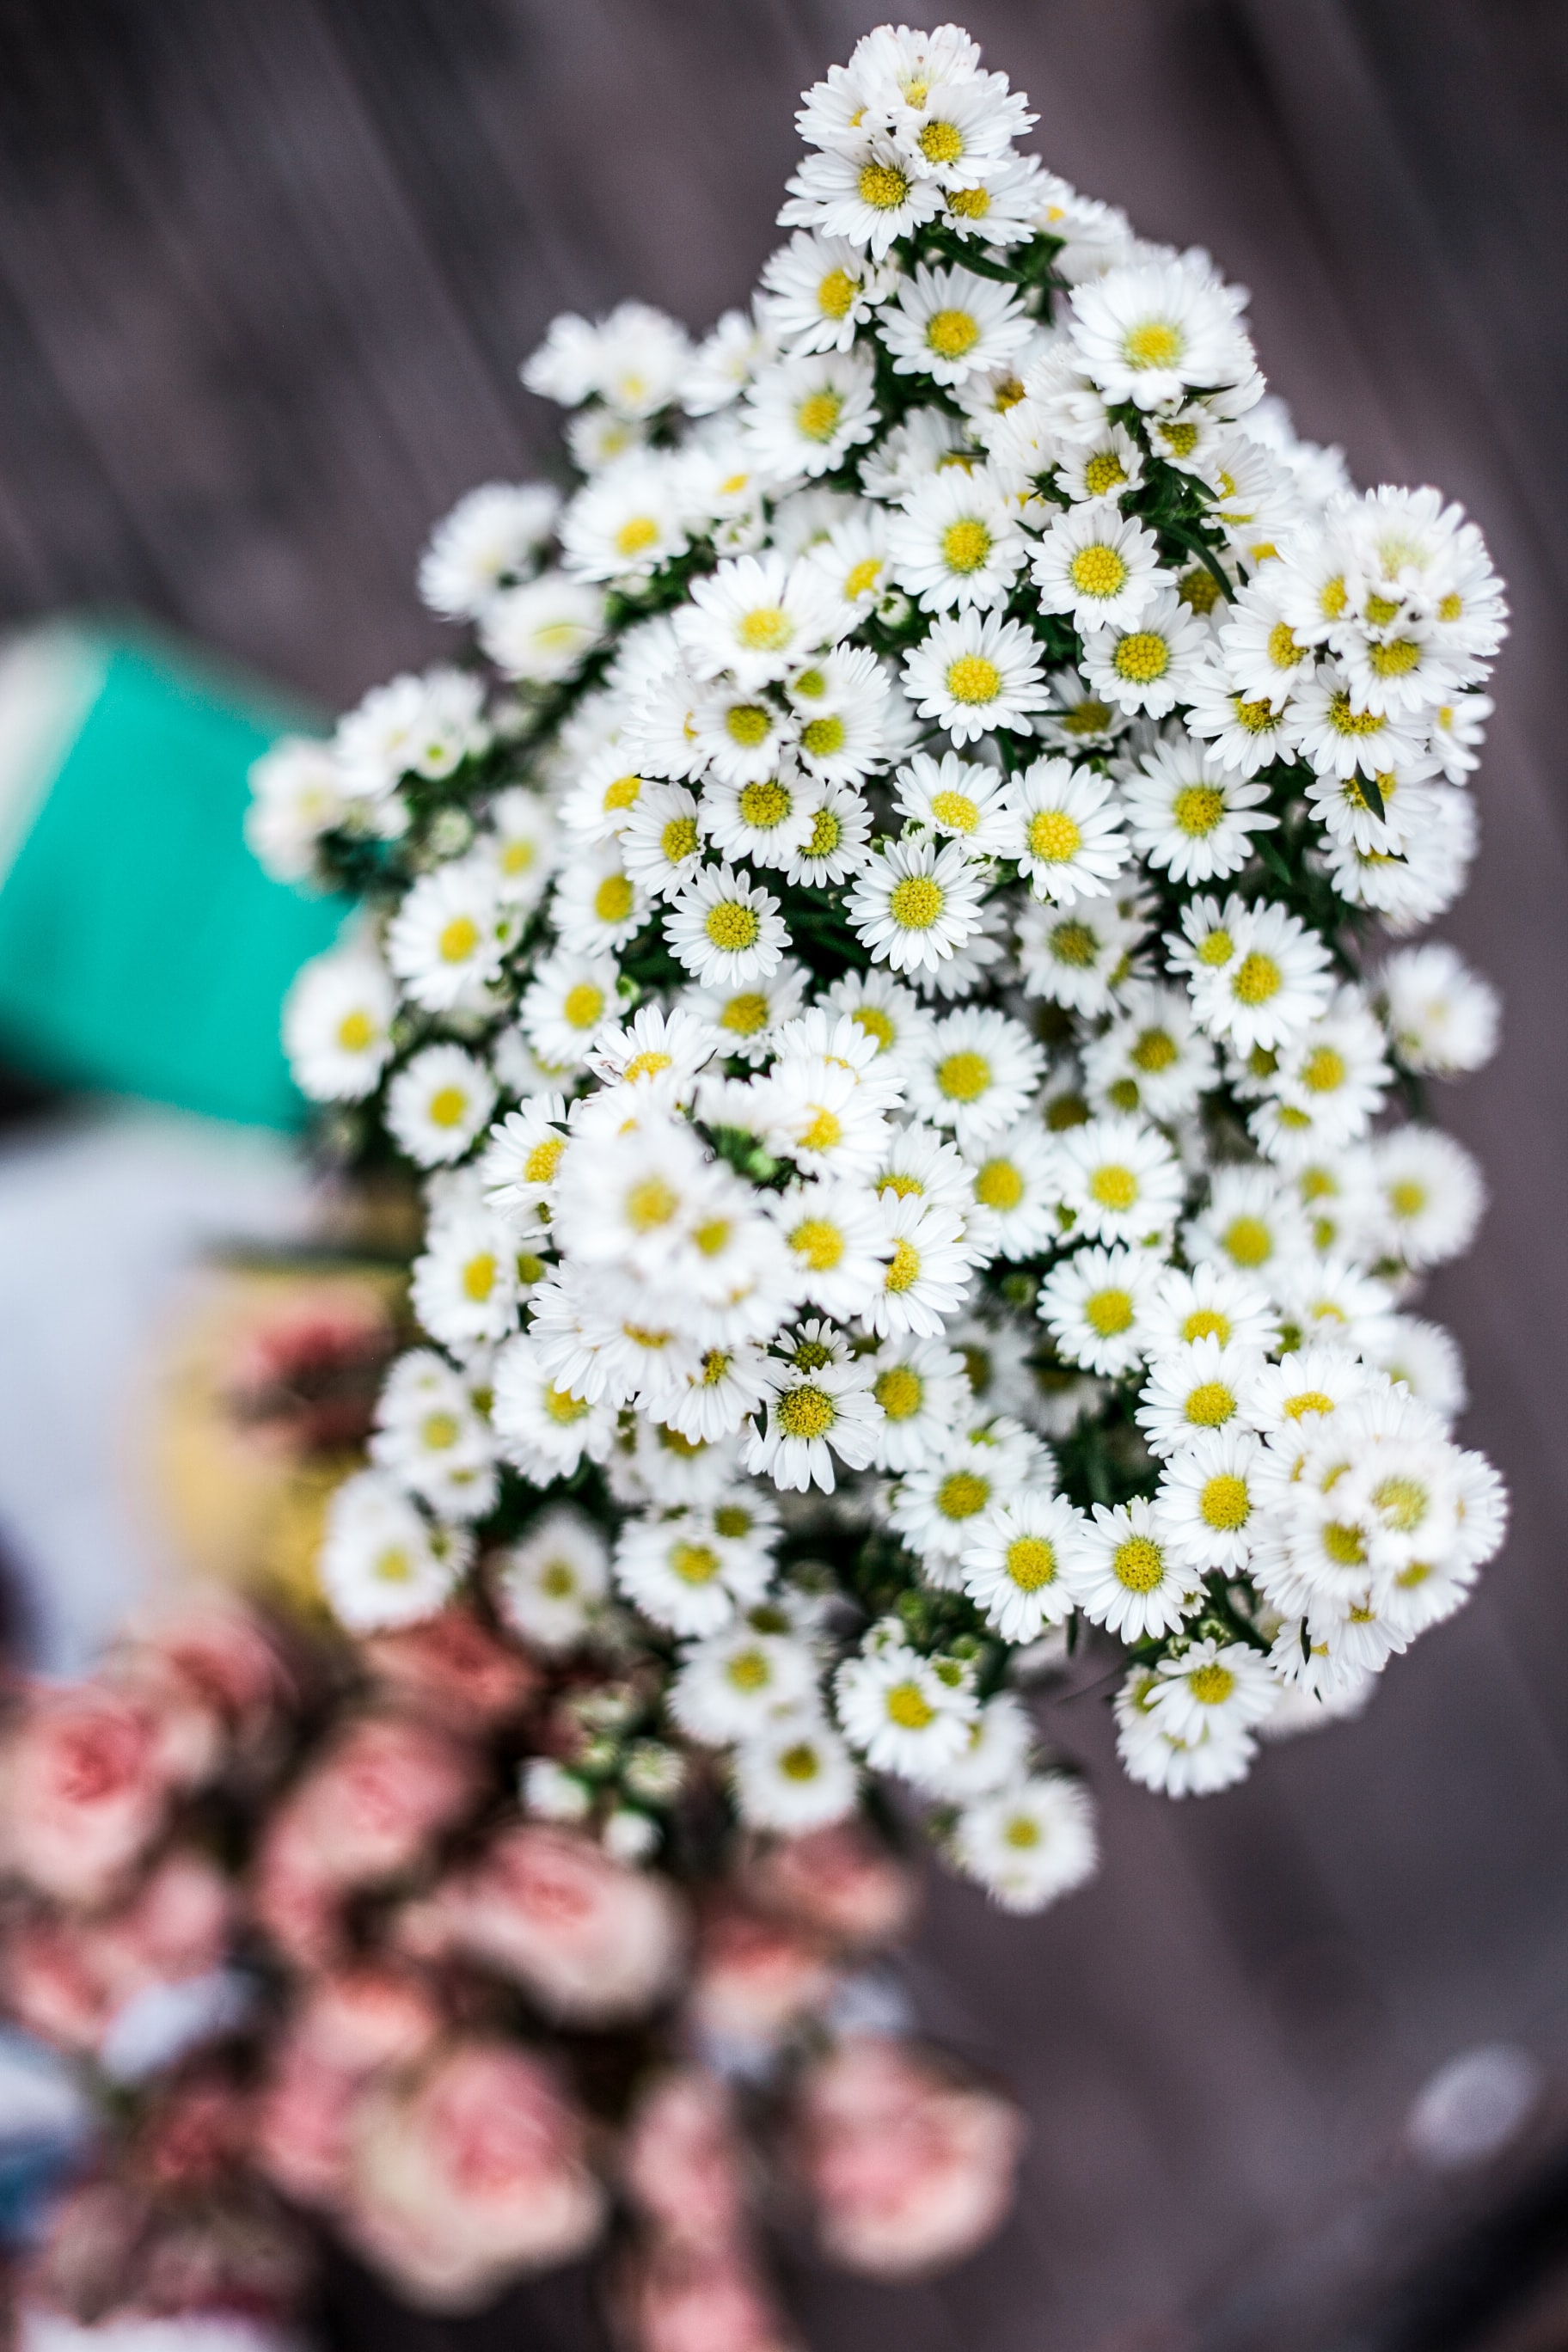 shallow focus of white and yellow flowers during daytime